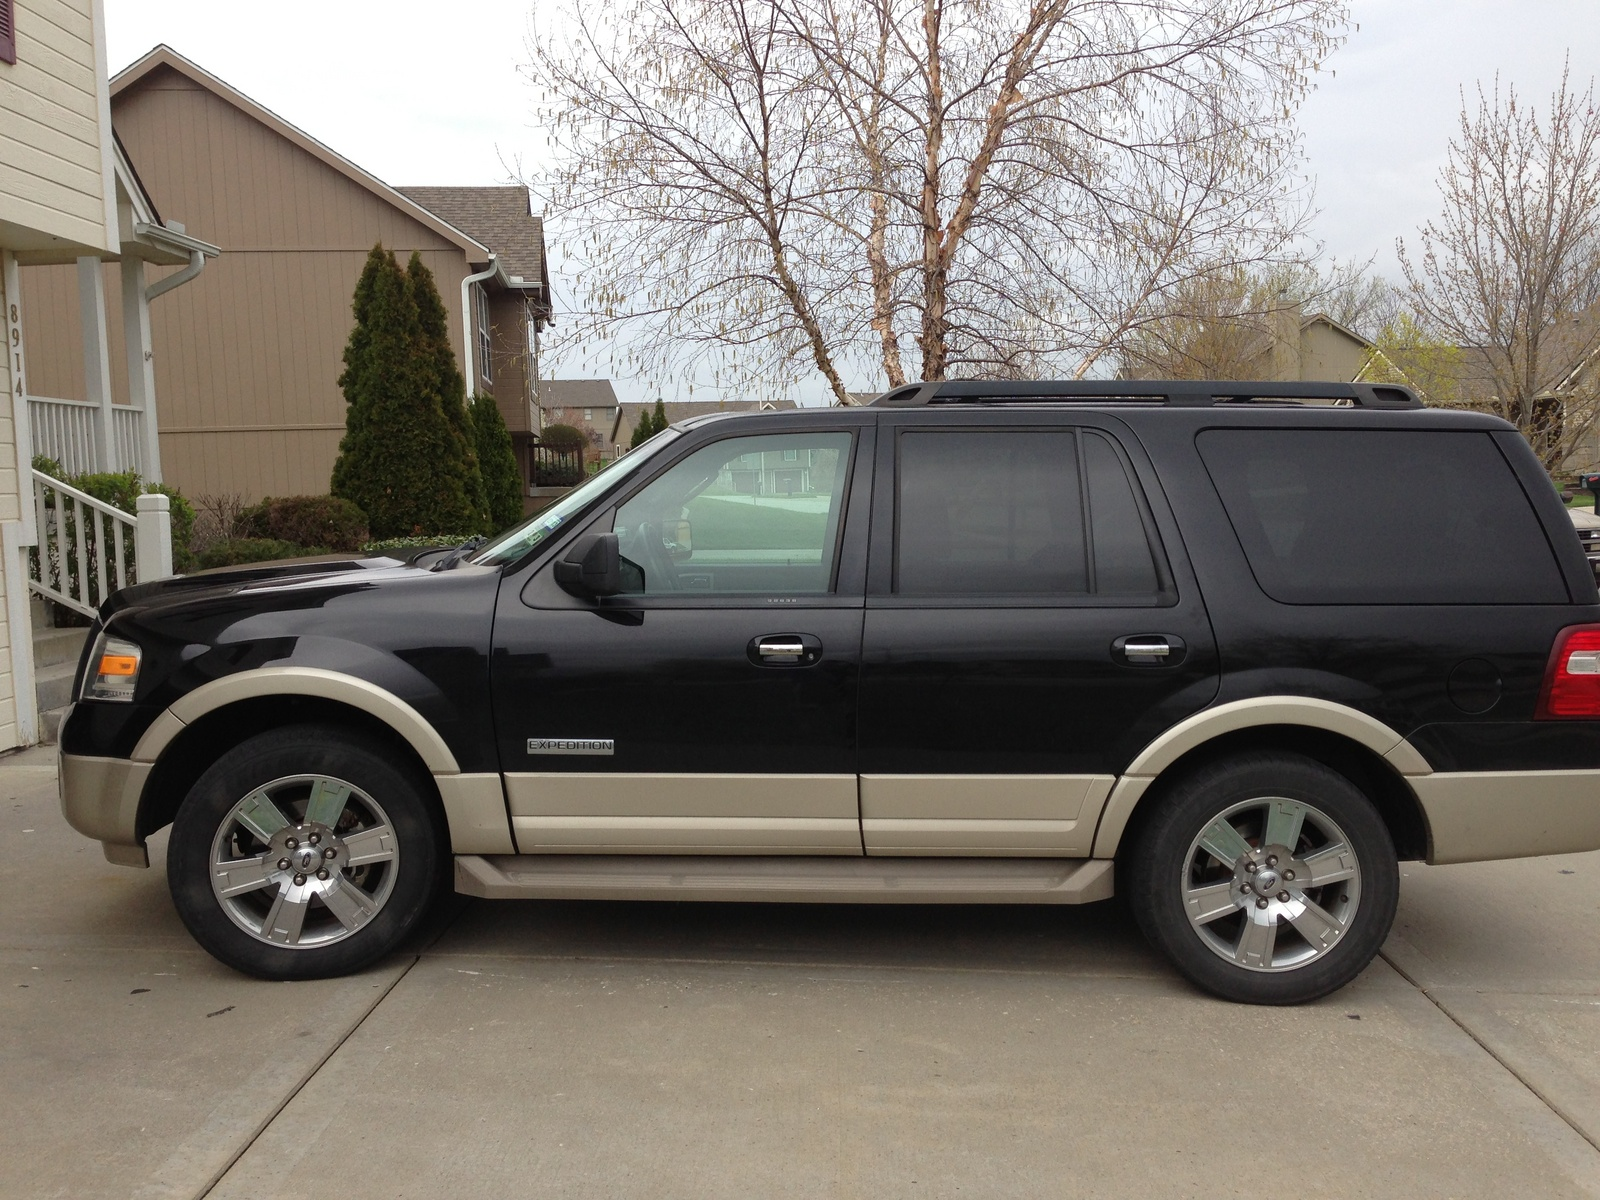 Picture of 2007 Ford Expedition EL Eddie Bauer 4X4